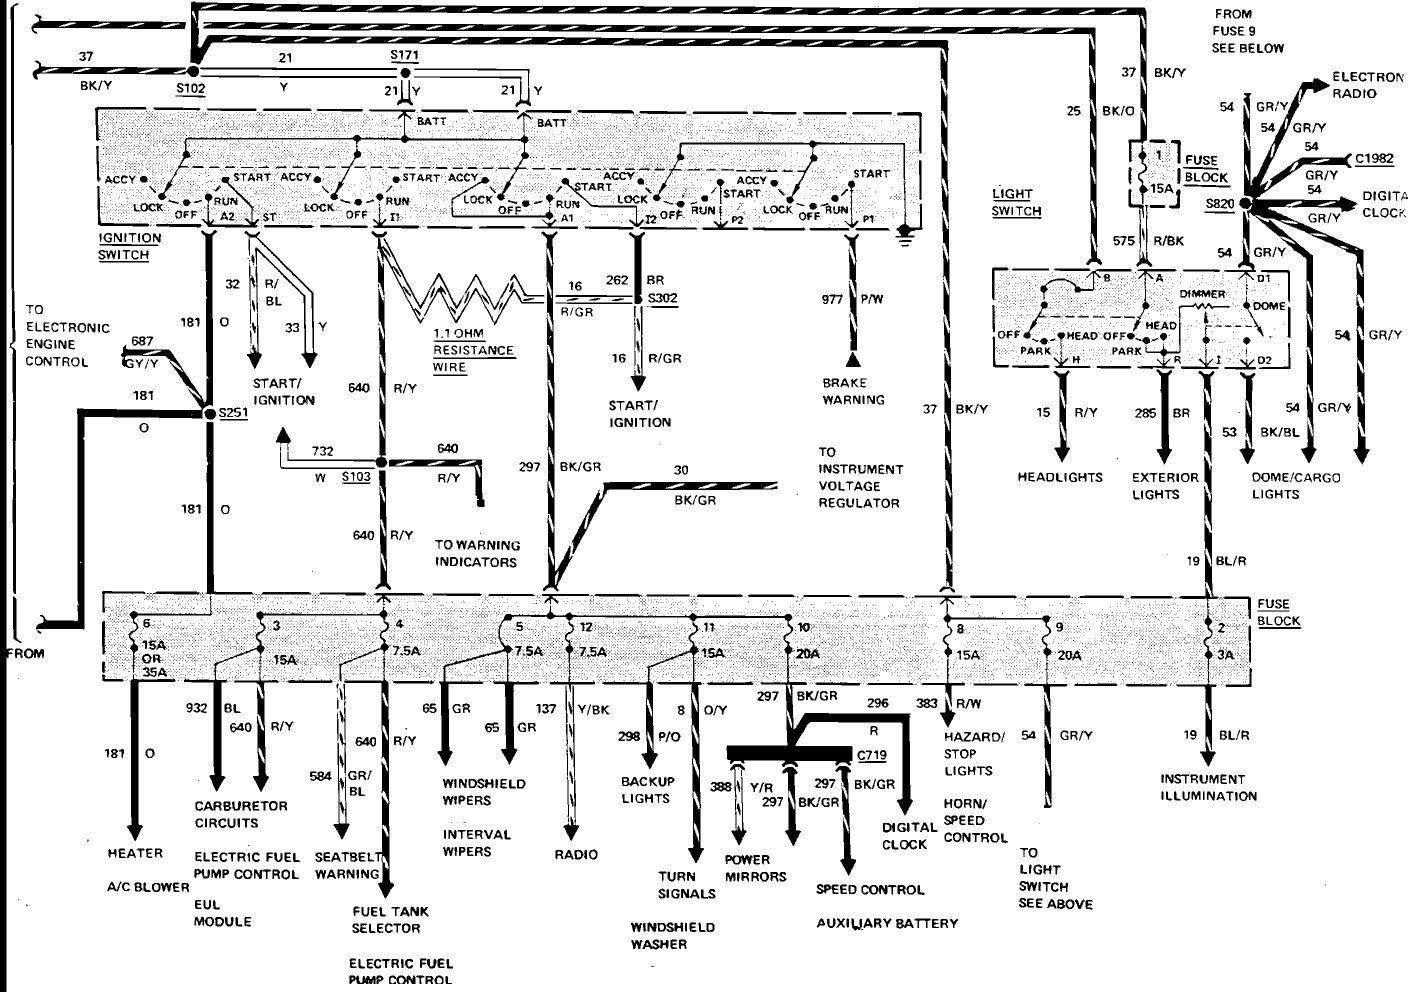 Bad Boy Ambush Buggy Wiring Diagram Awesome